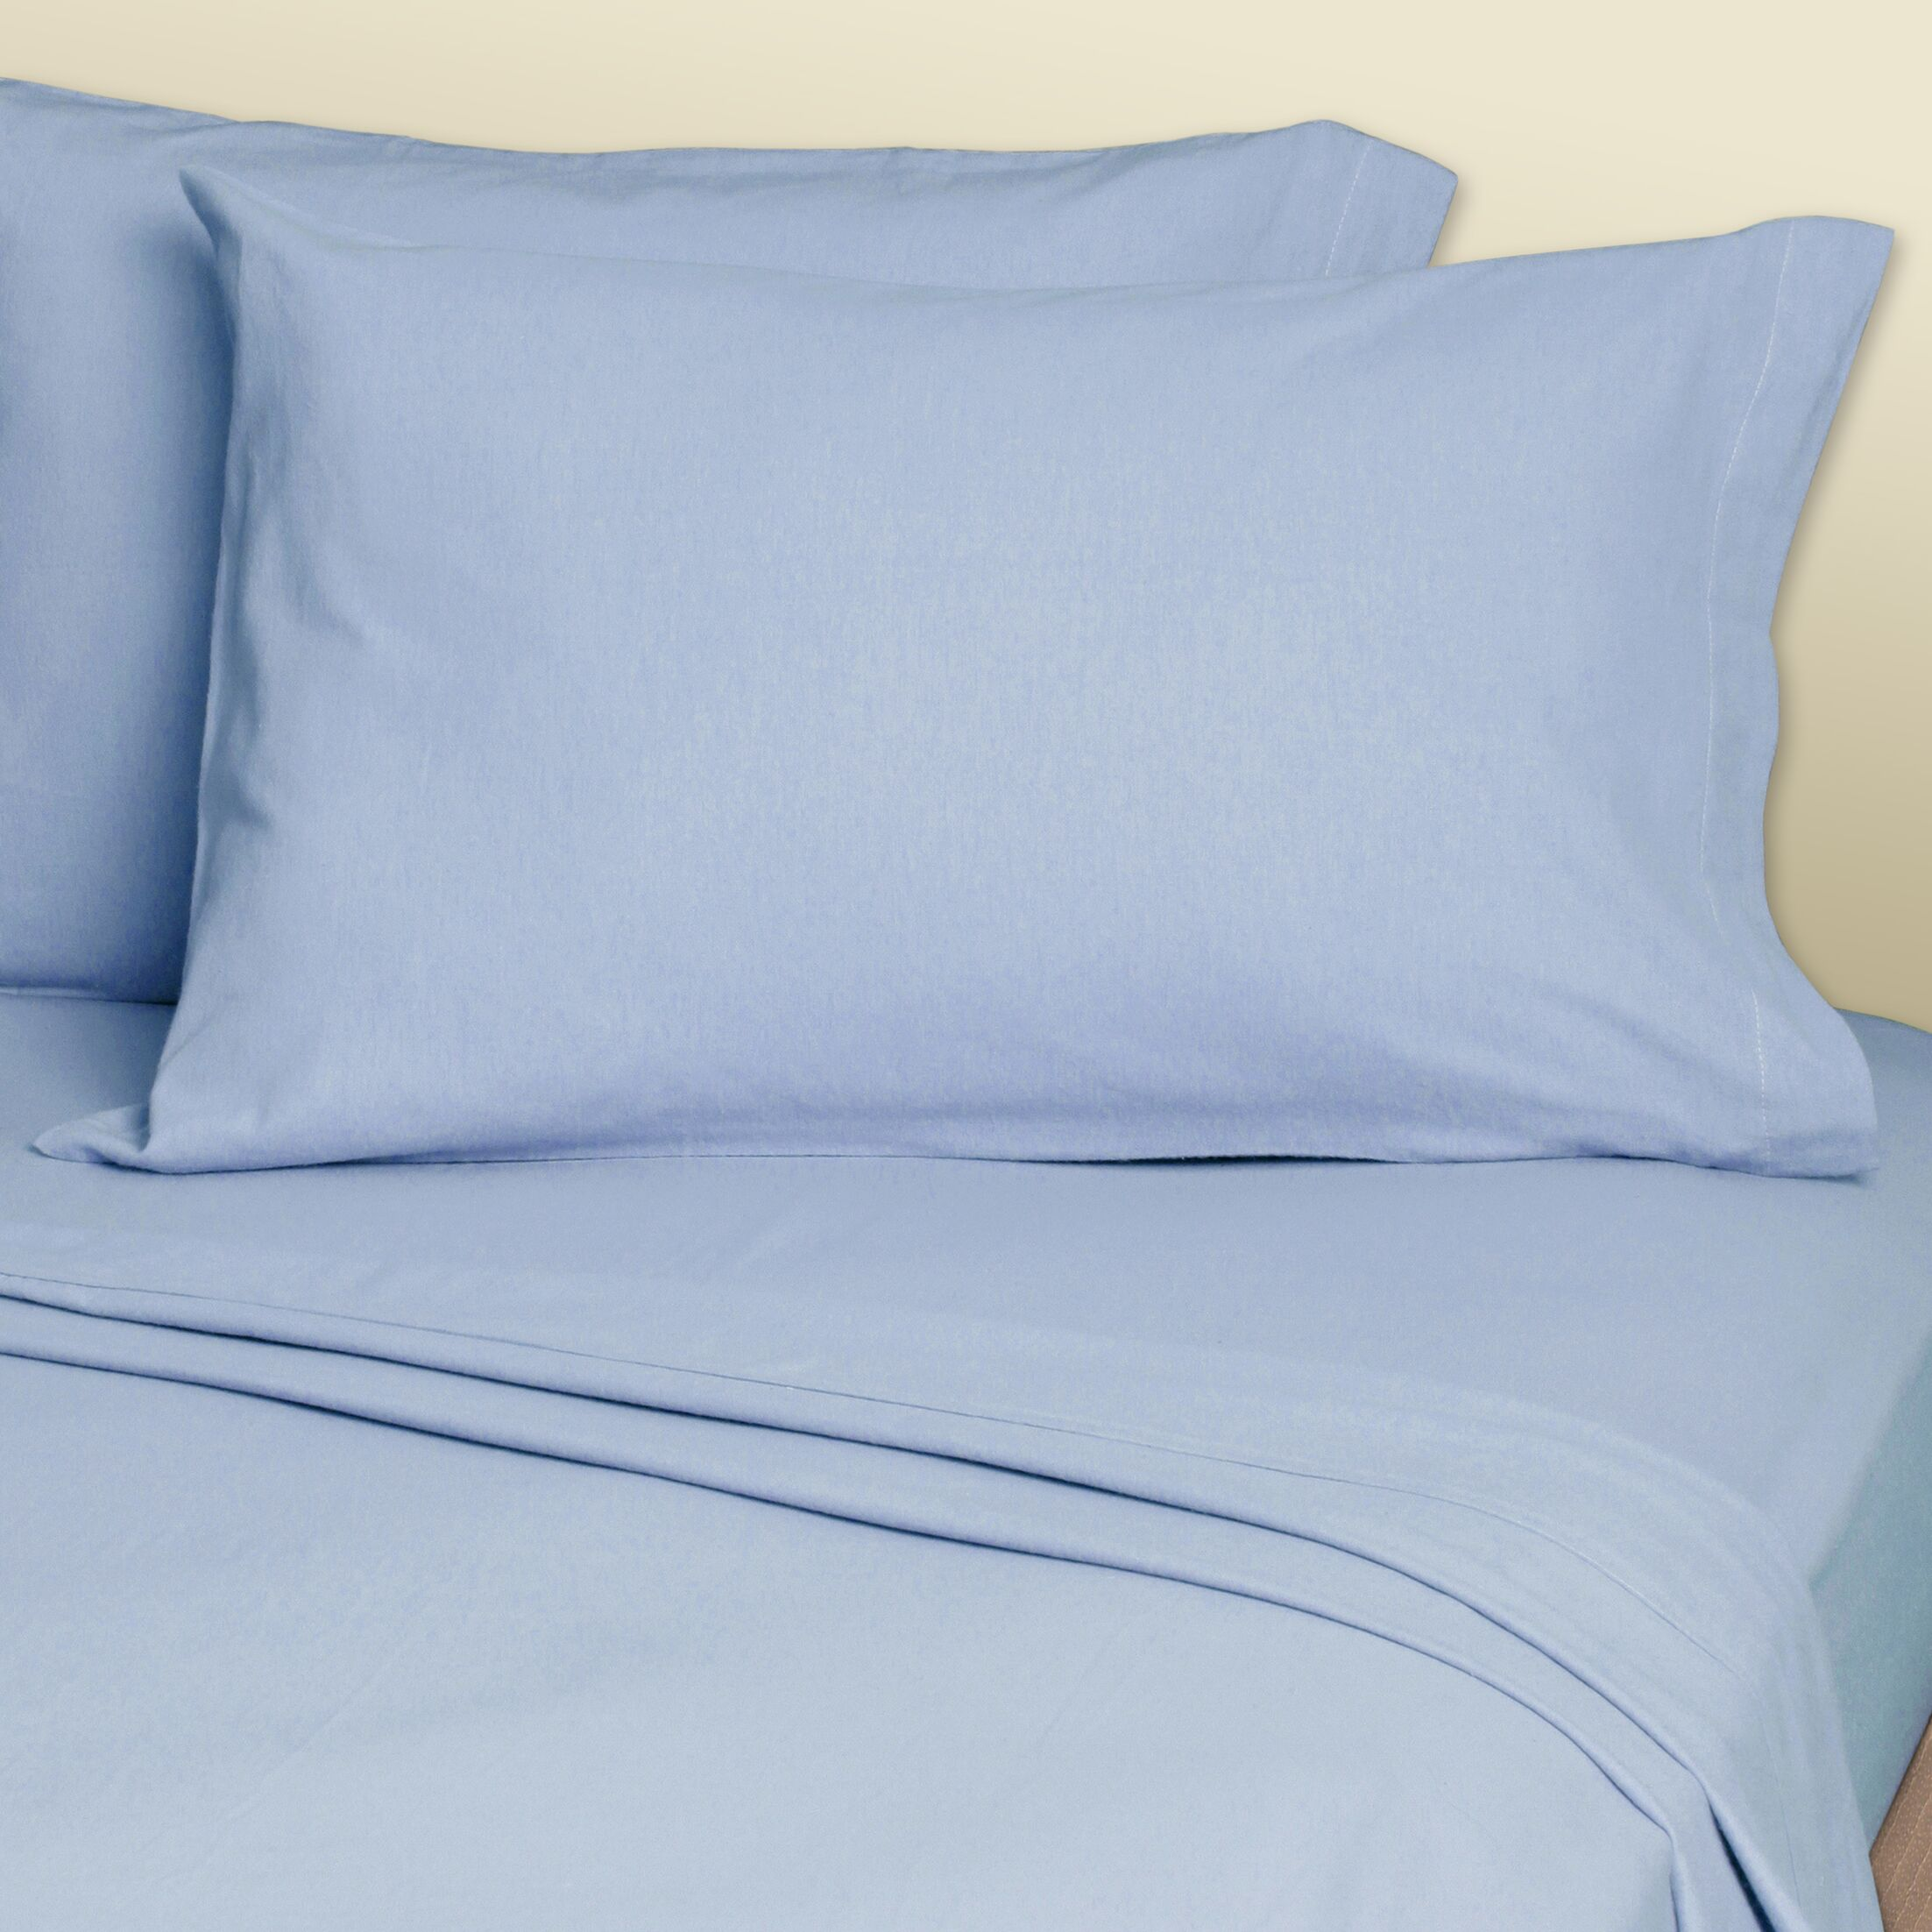 4 Piece 200 Thread Count Convert-A-Fit Waterbed Sheet Set Size: King, Color: Medium Blue